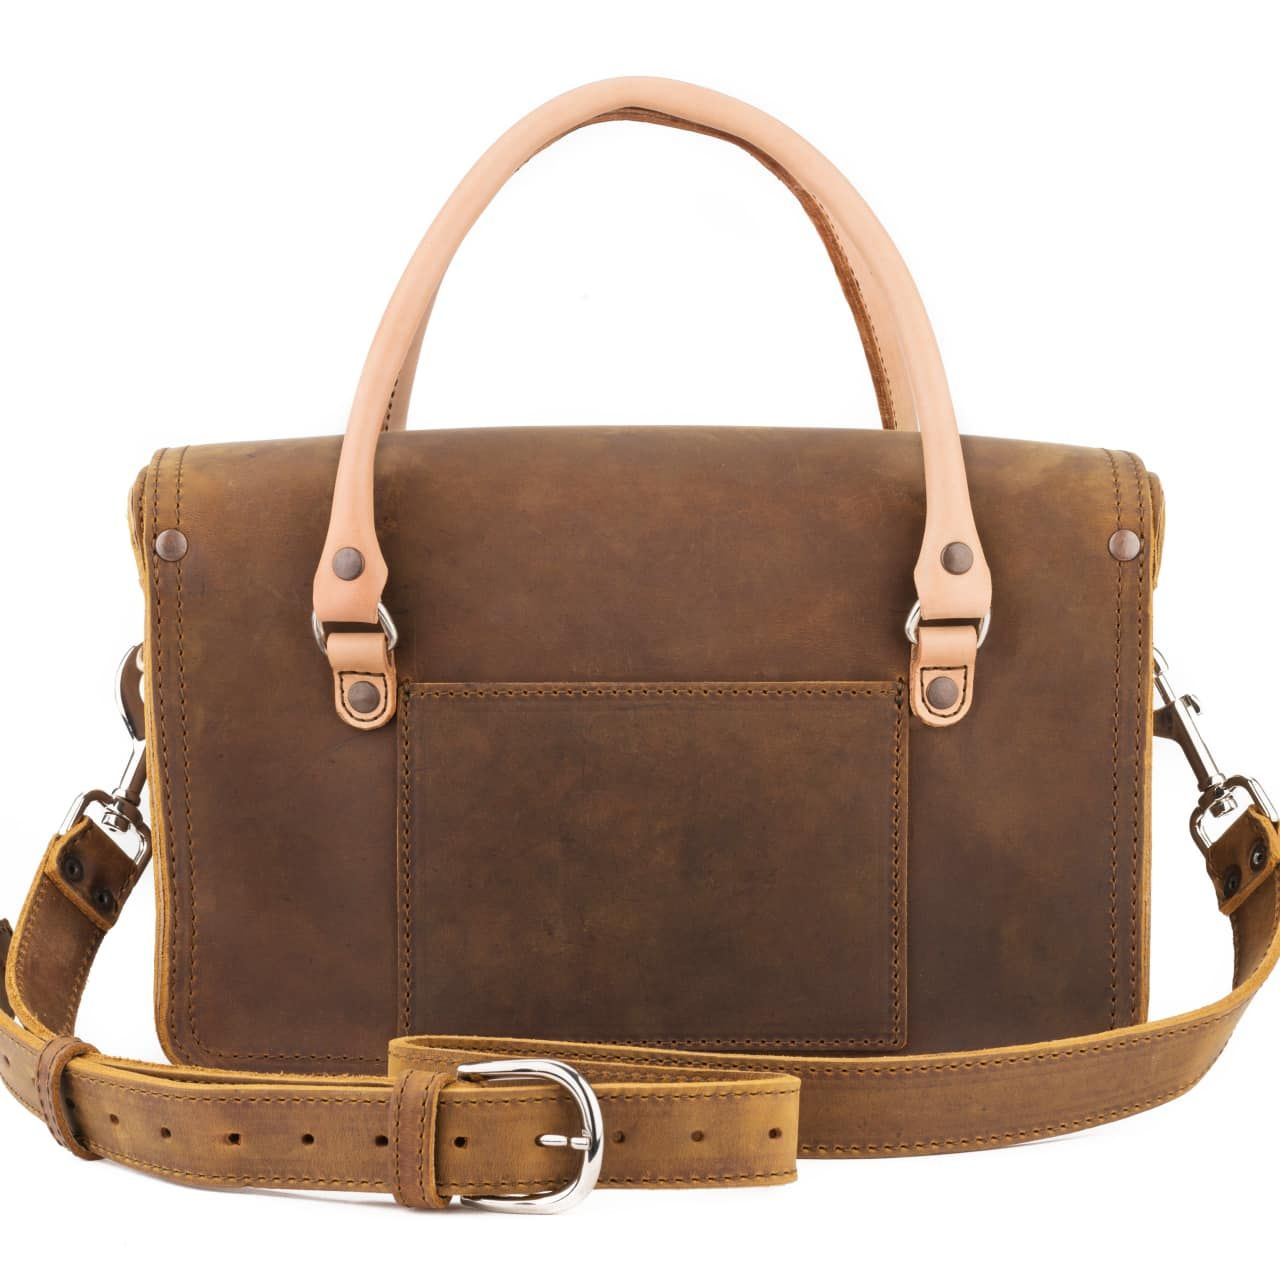 leather satchel purse in tobacco leather